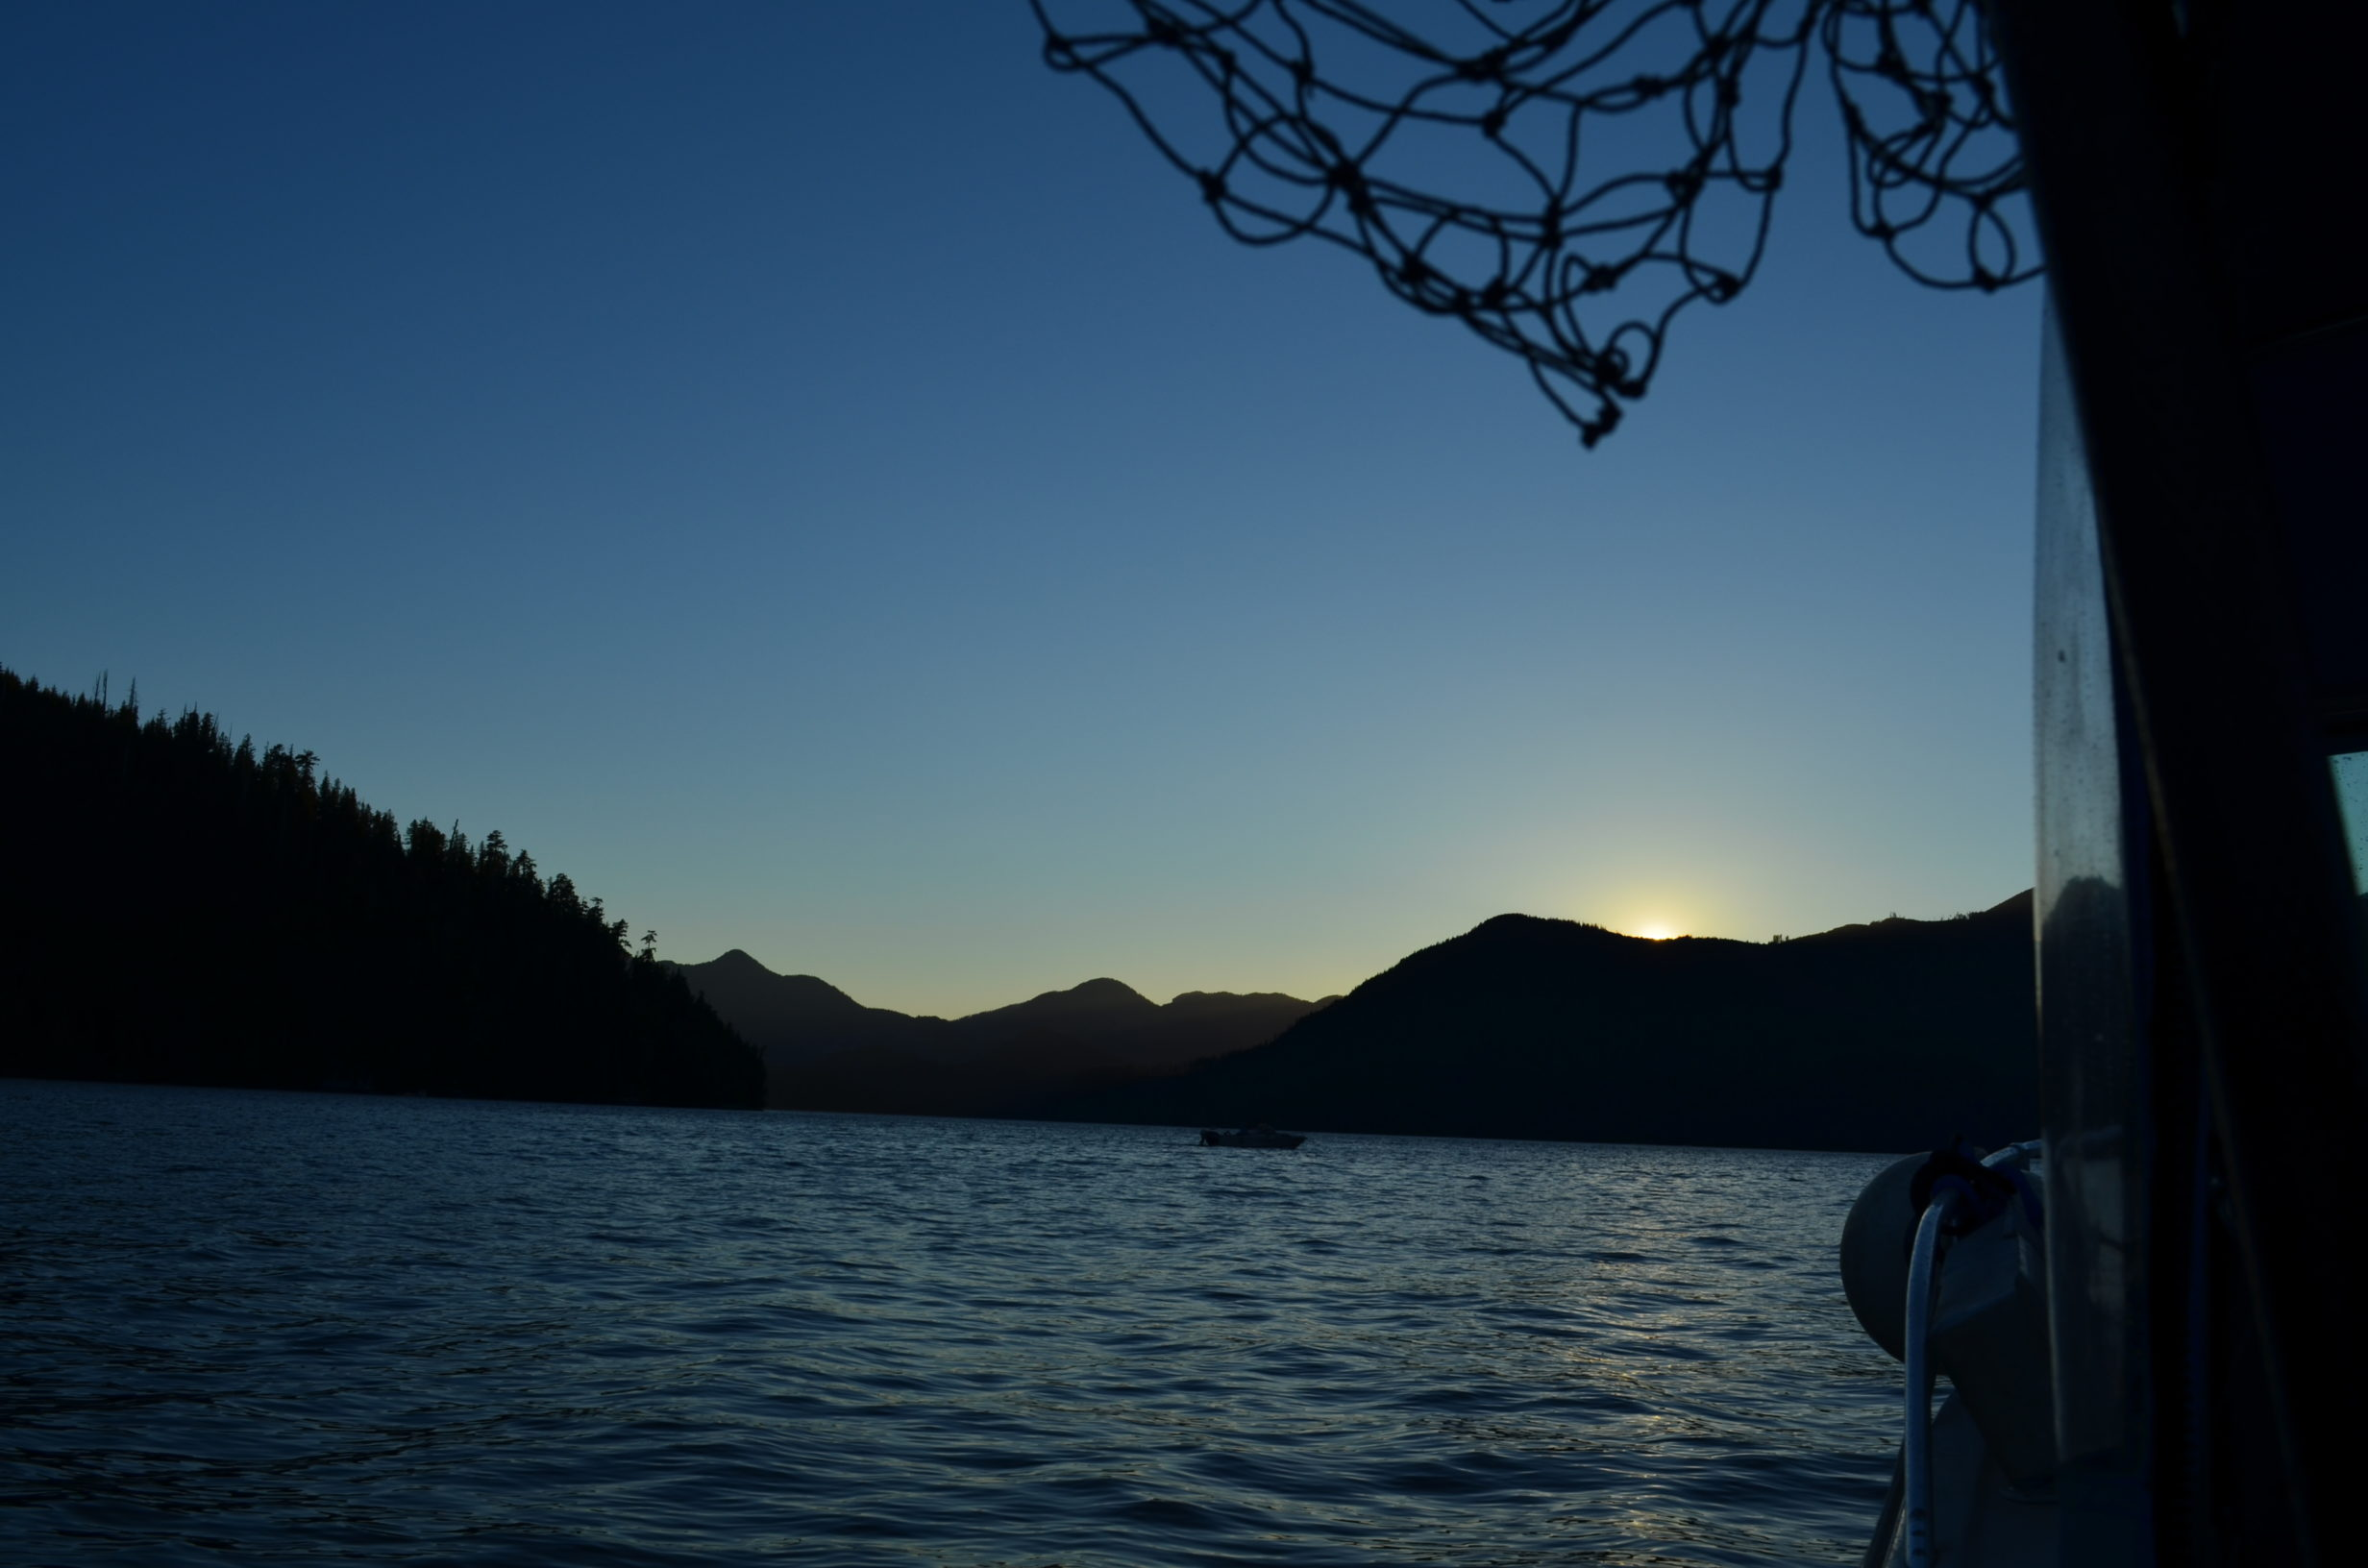 Sunset in Nootka